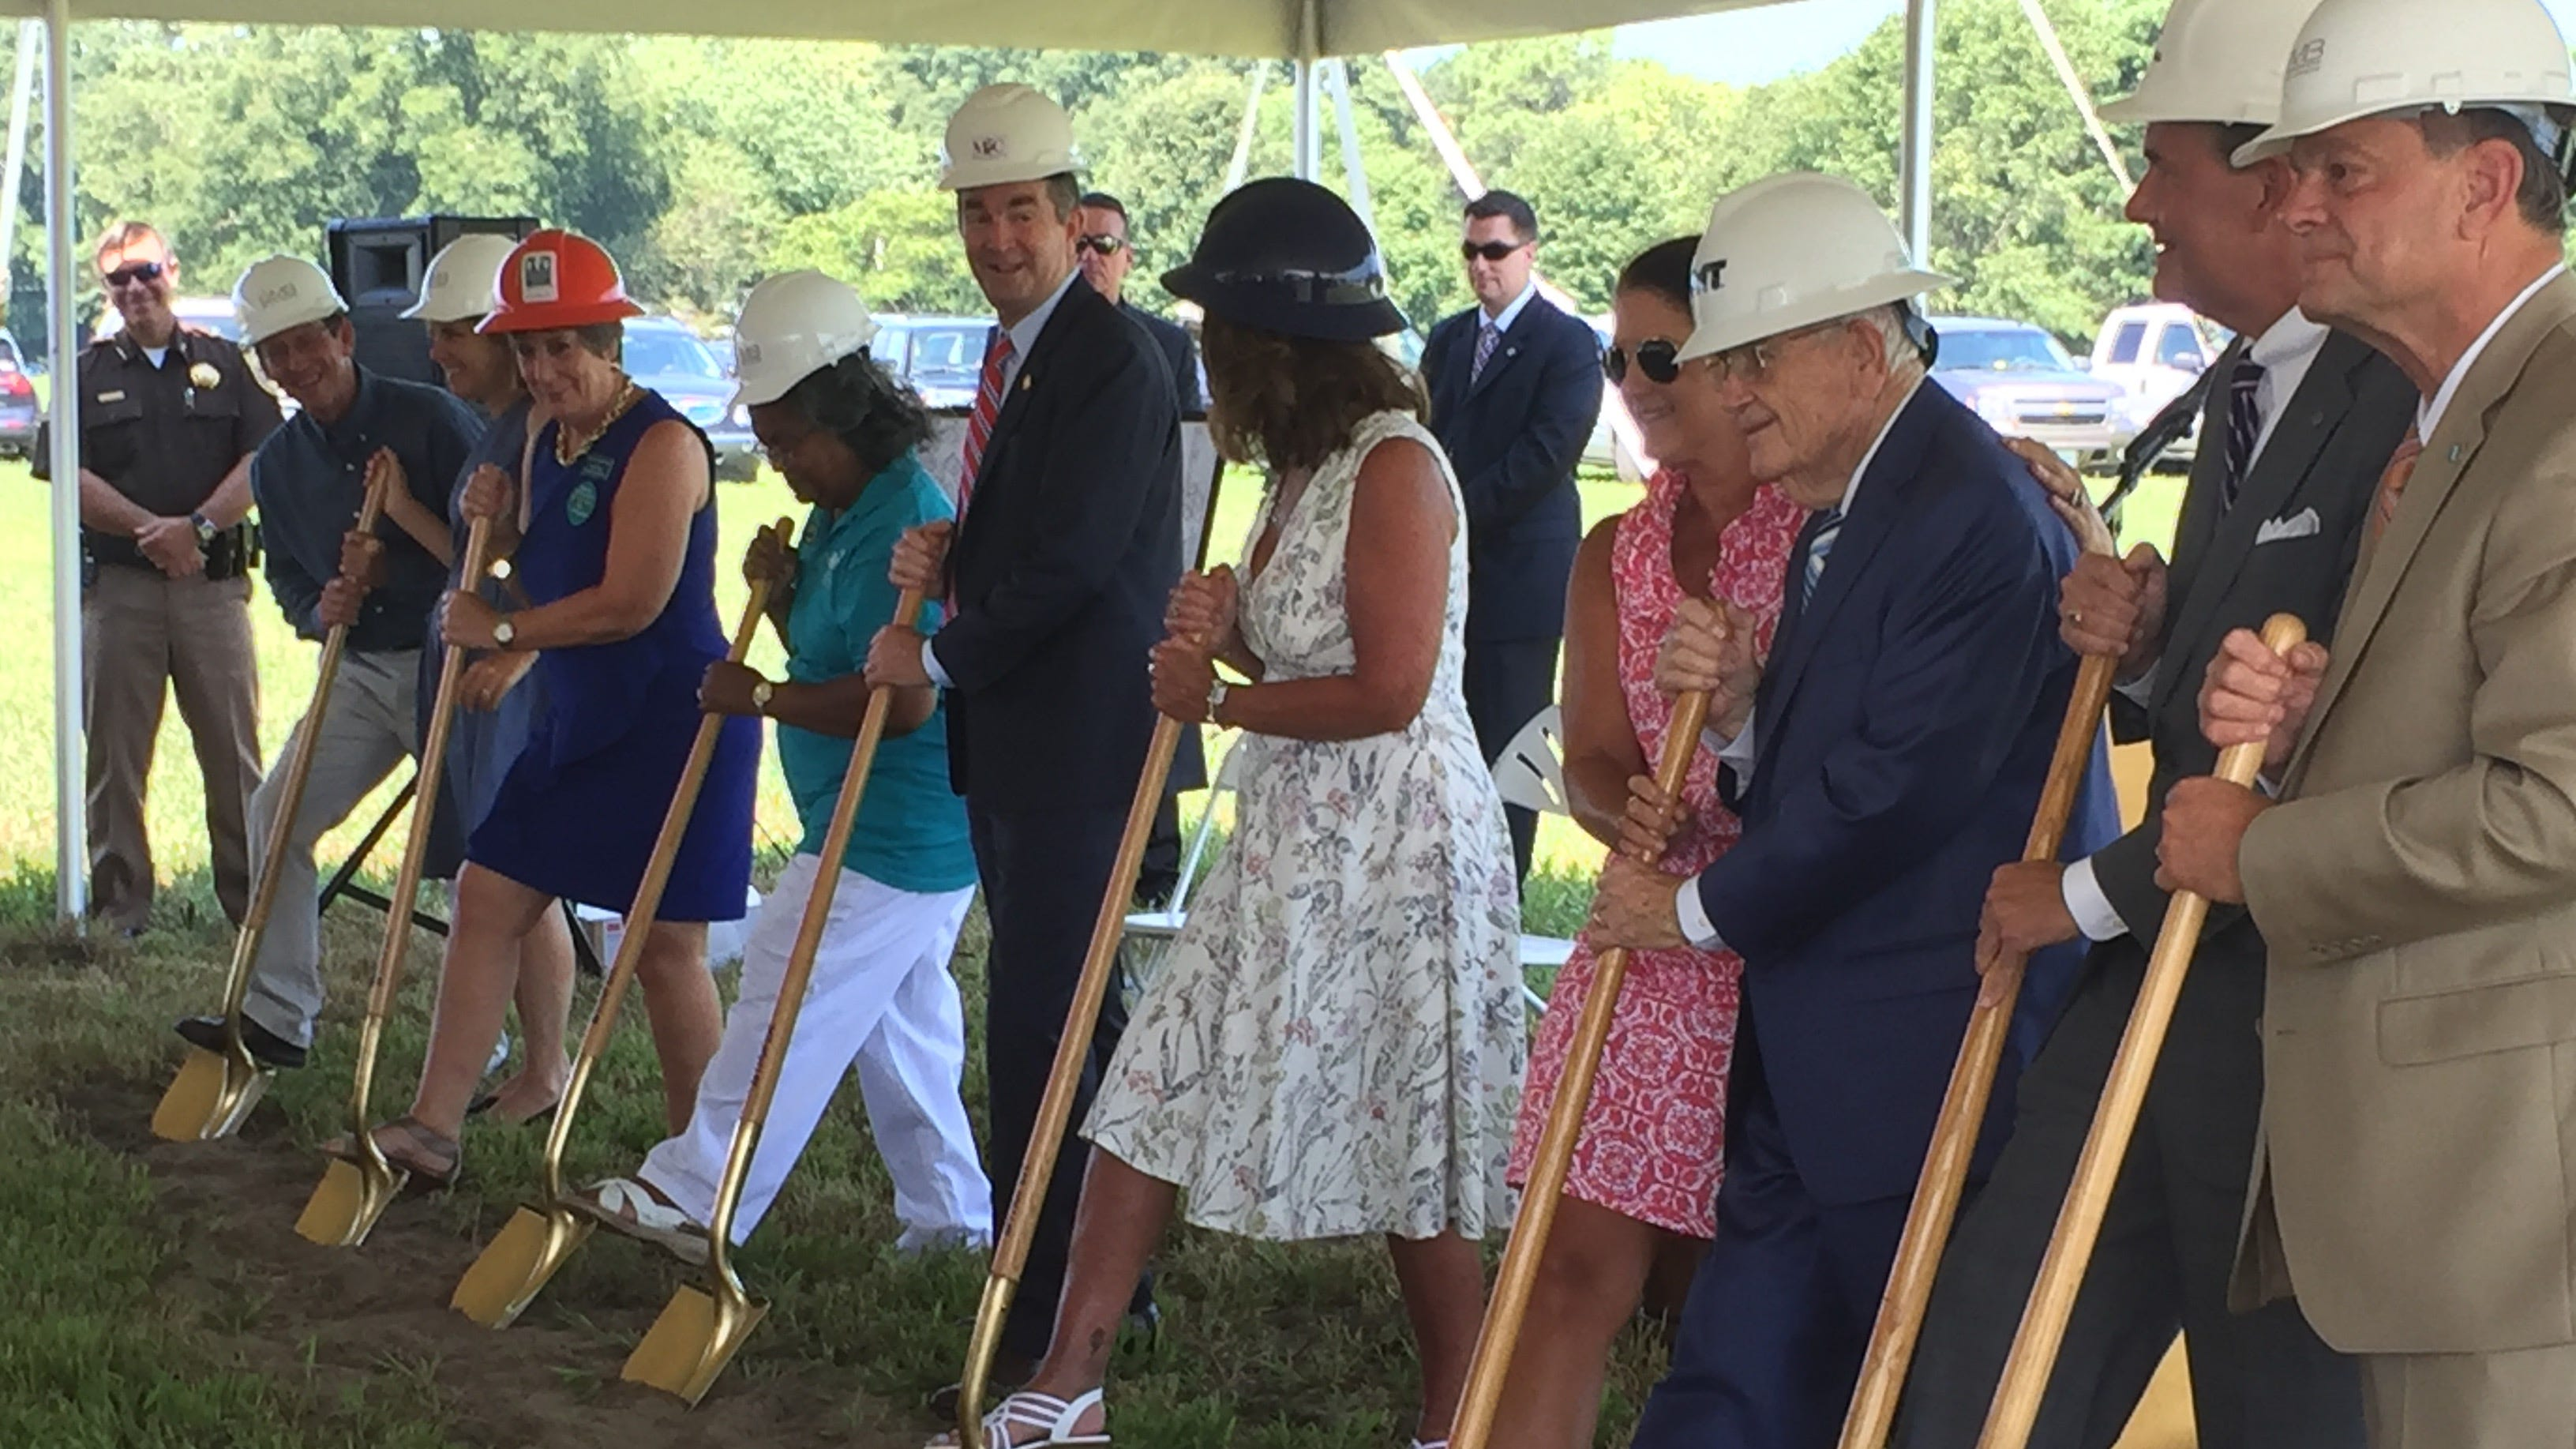 Officials break ground on Eastville Community Health Center during a ceremony in Eastville, Virginia on Wednesday, Aug. 15, 2018.